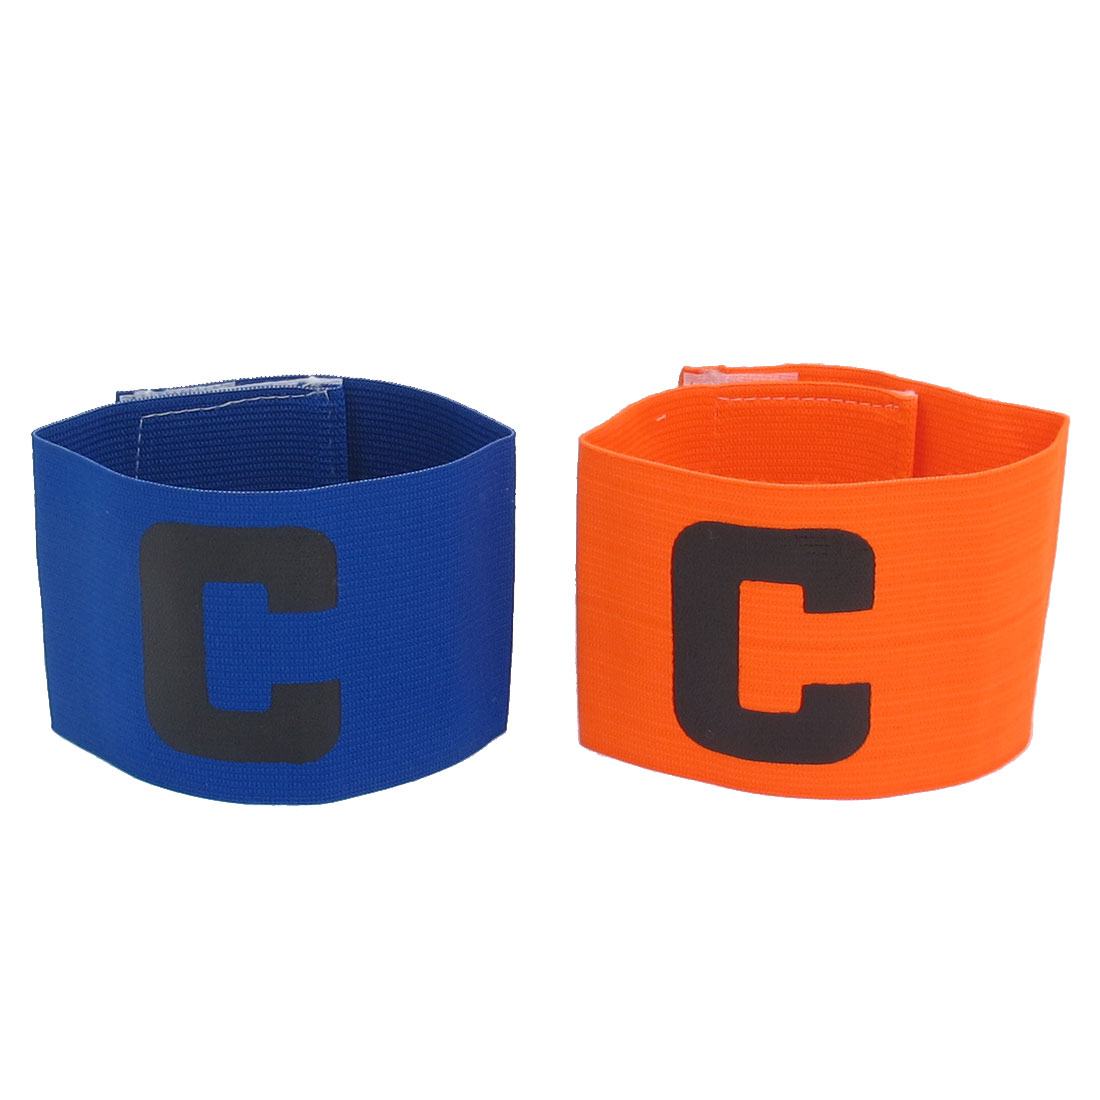 C Printed Stretchy Football Tension Soccer Match Player Captain Armband Orange Blue 2pcs